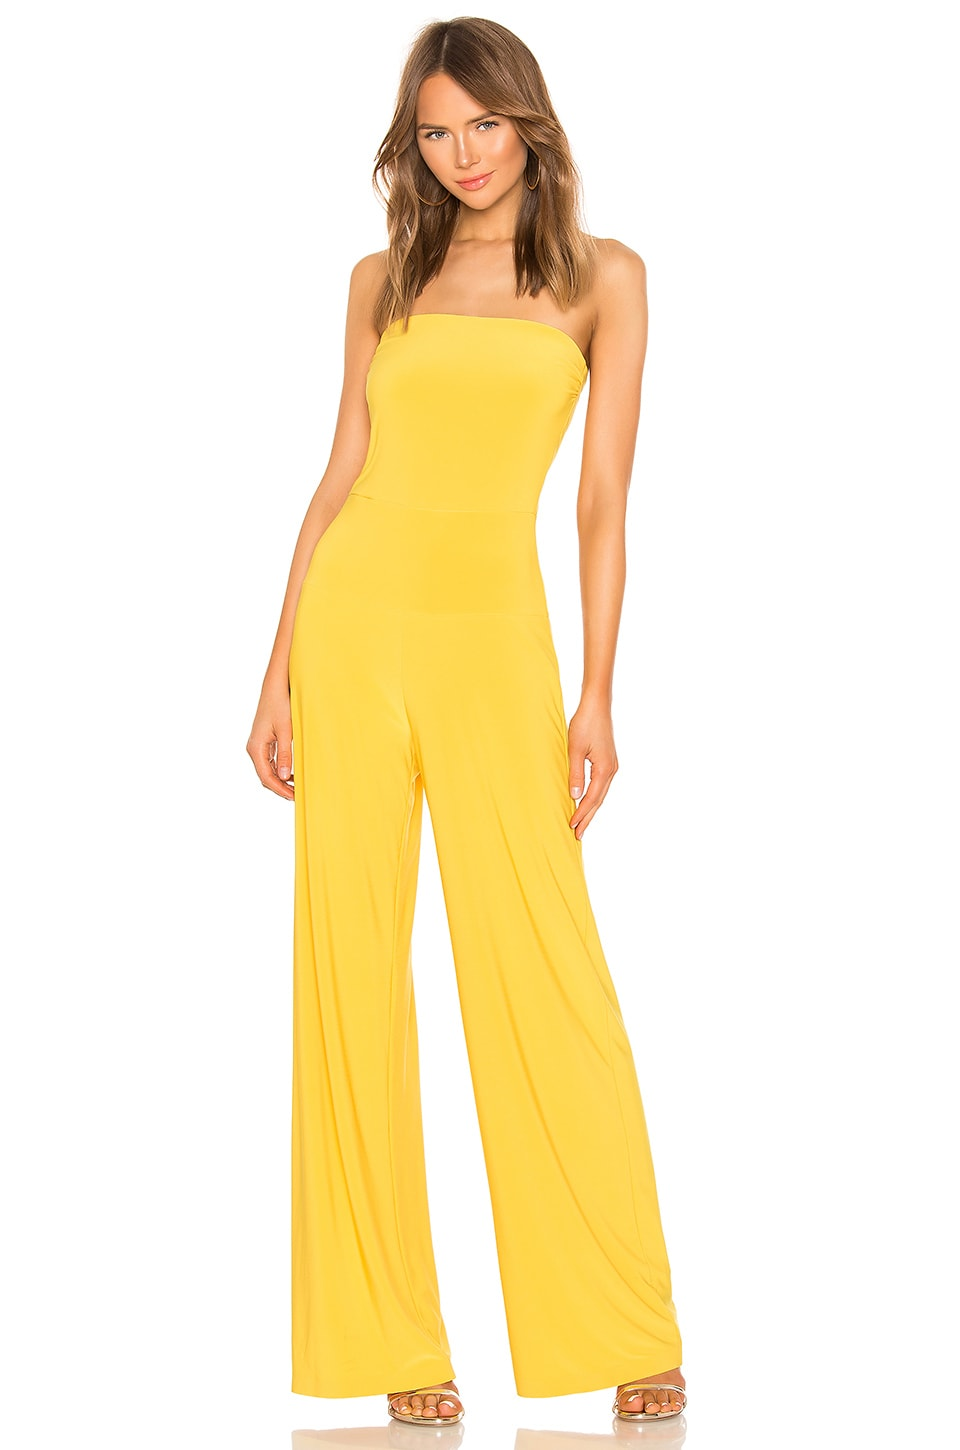 Norma Kamali X REVOLVE Strapless Jumpsuit in Gold